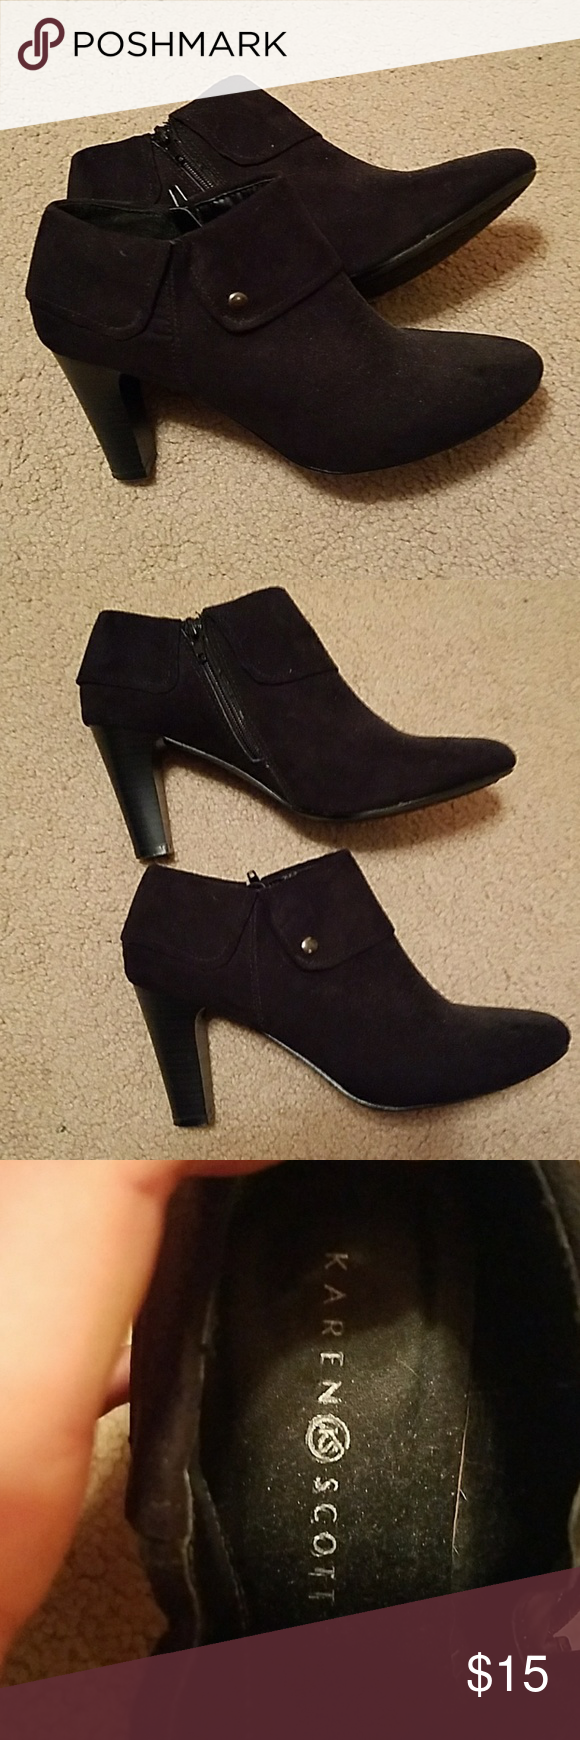 Karen Scott black booties Small black boots by Karen Scott. Only worn once or twice. Perfect for a night out with jeans or dressed up for business! Karen Scott Shoes Heels